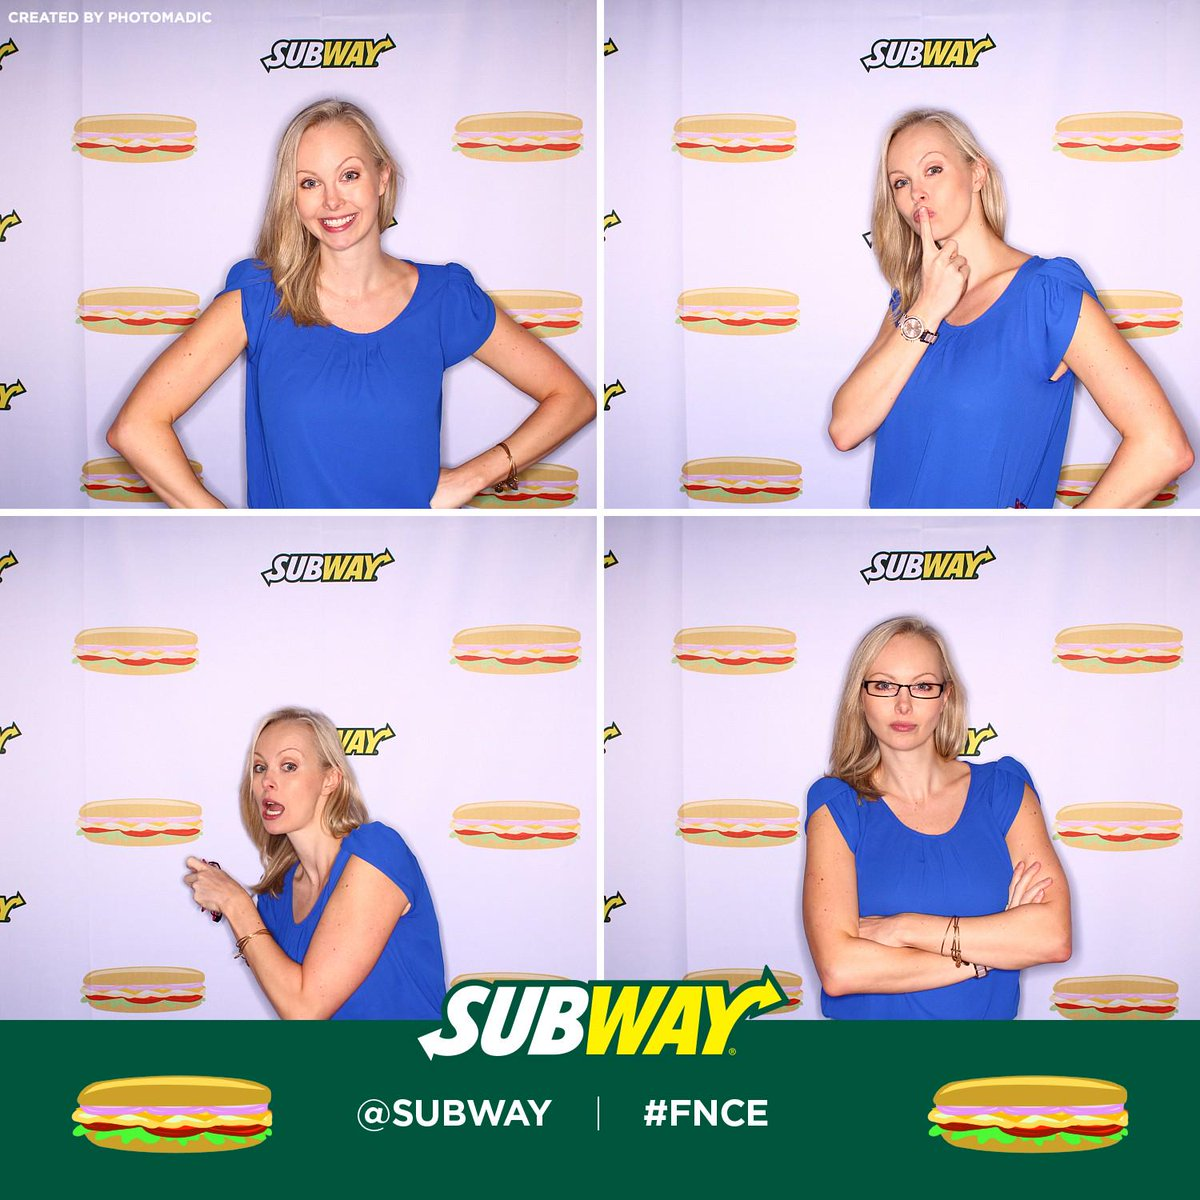 Hanging out with @SUBWAY at #FNCE http://t.co/fEztTM5DQk http://t.co/bk2o8oyX3A